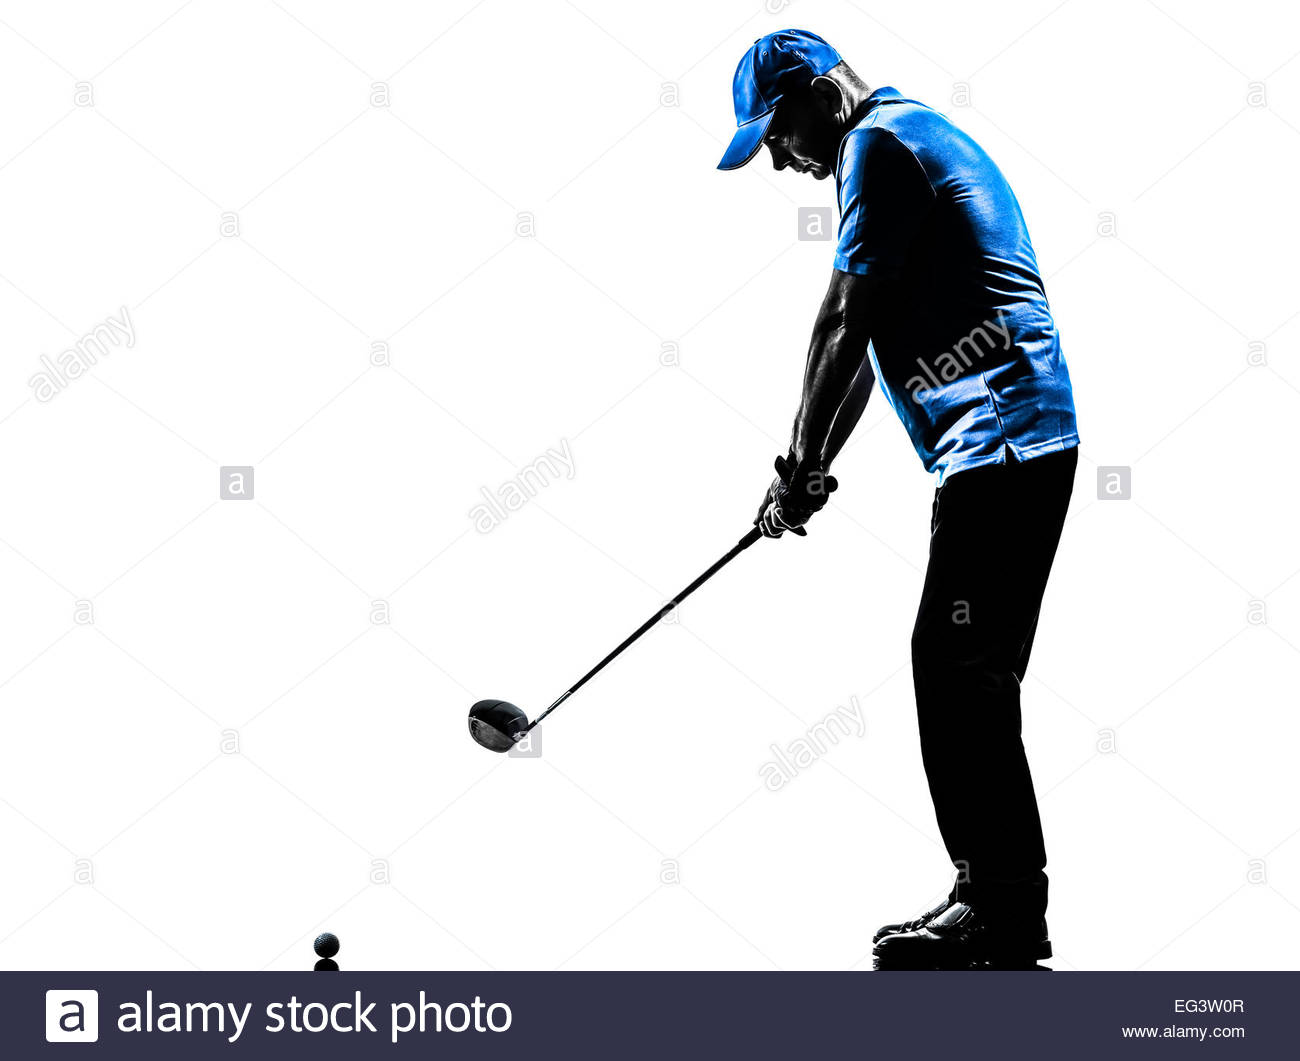 1300x1061e Man Golfer Golfing Golf Swing In Silhouette Studio Isolated